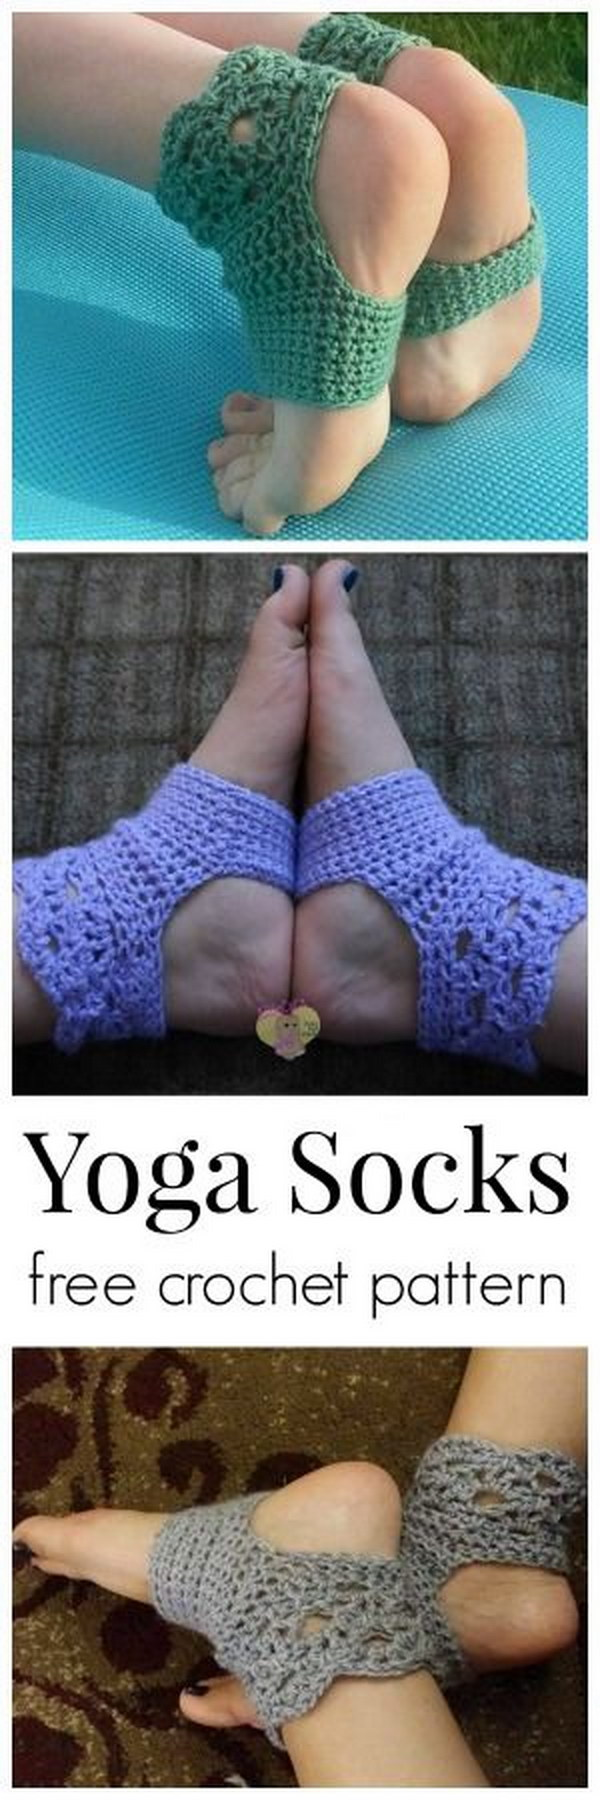 Crochet Pattern Yoga Socks : Yoga Socks Free Crochet Pattern How To Instructions